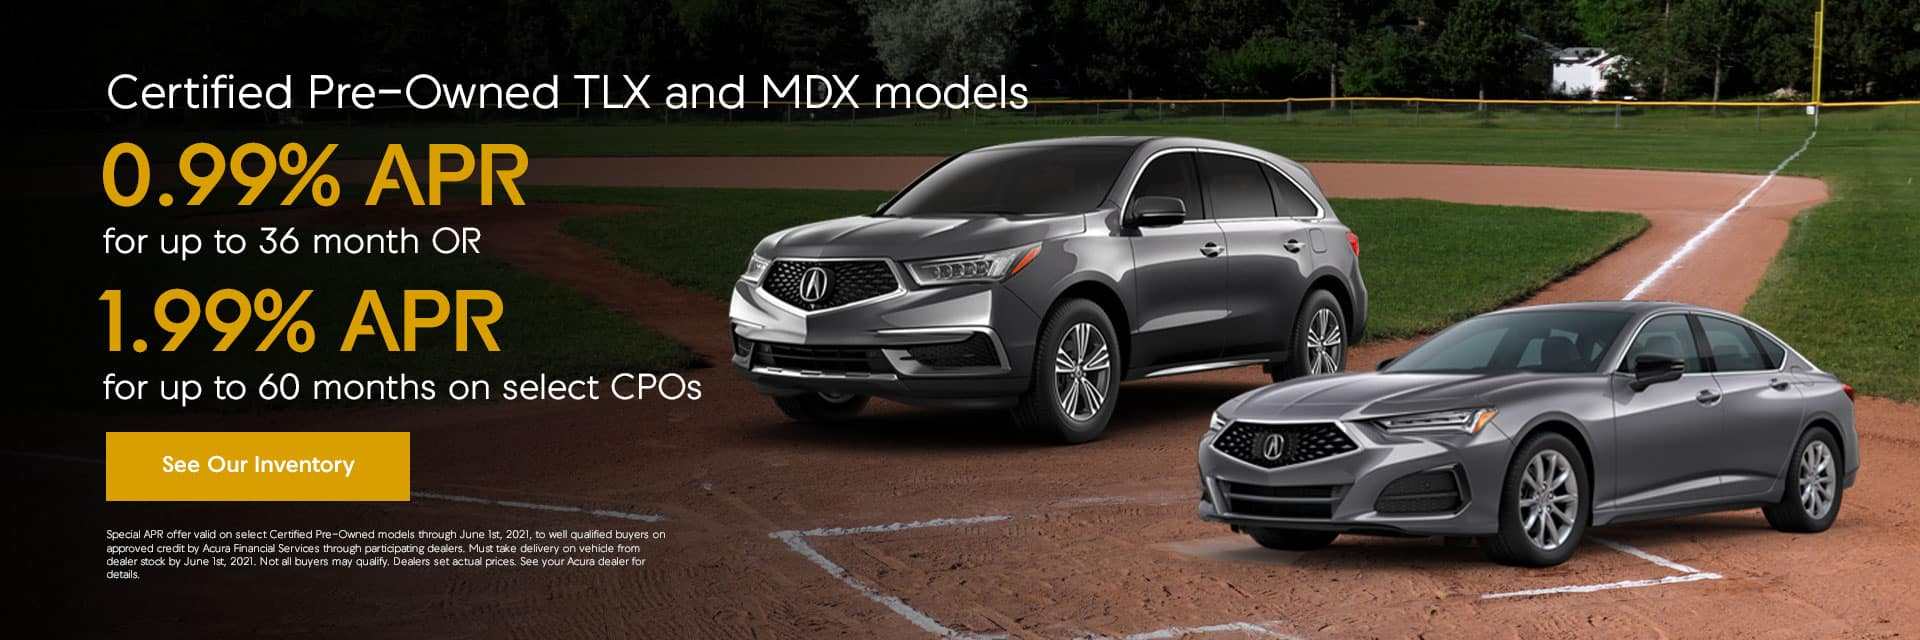 Certified Pre-Owned TLX and MDX models